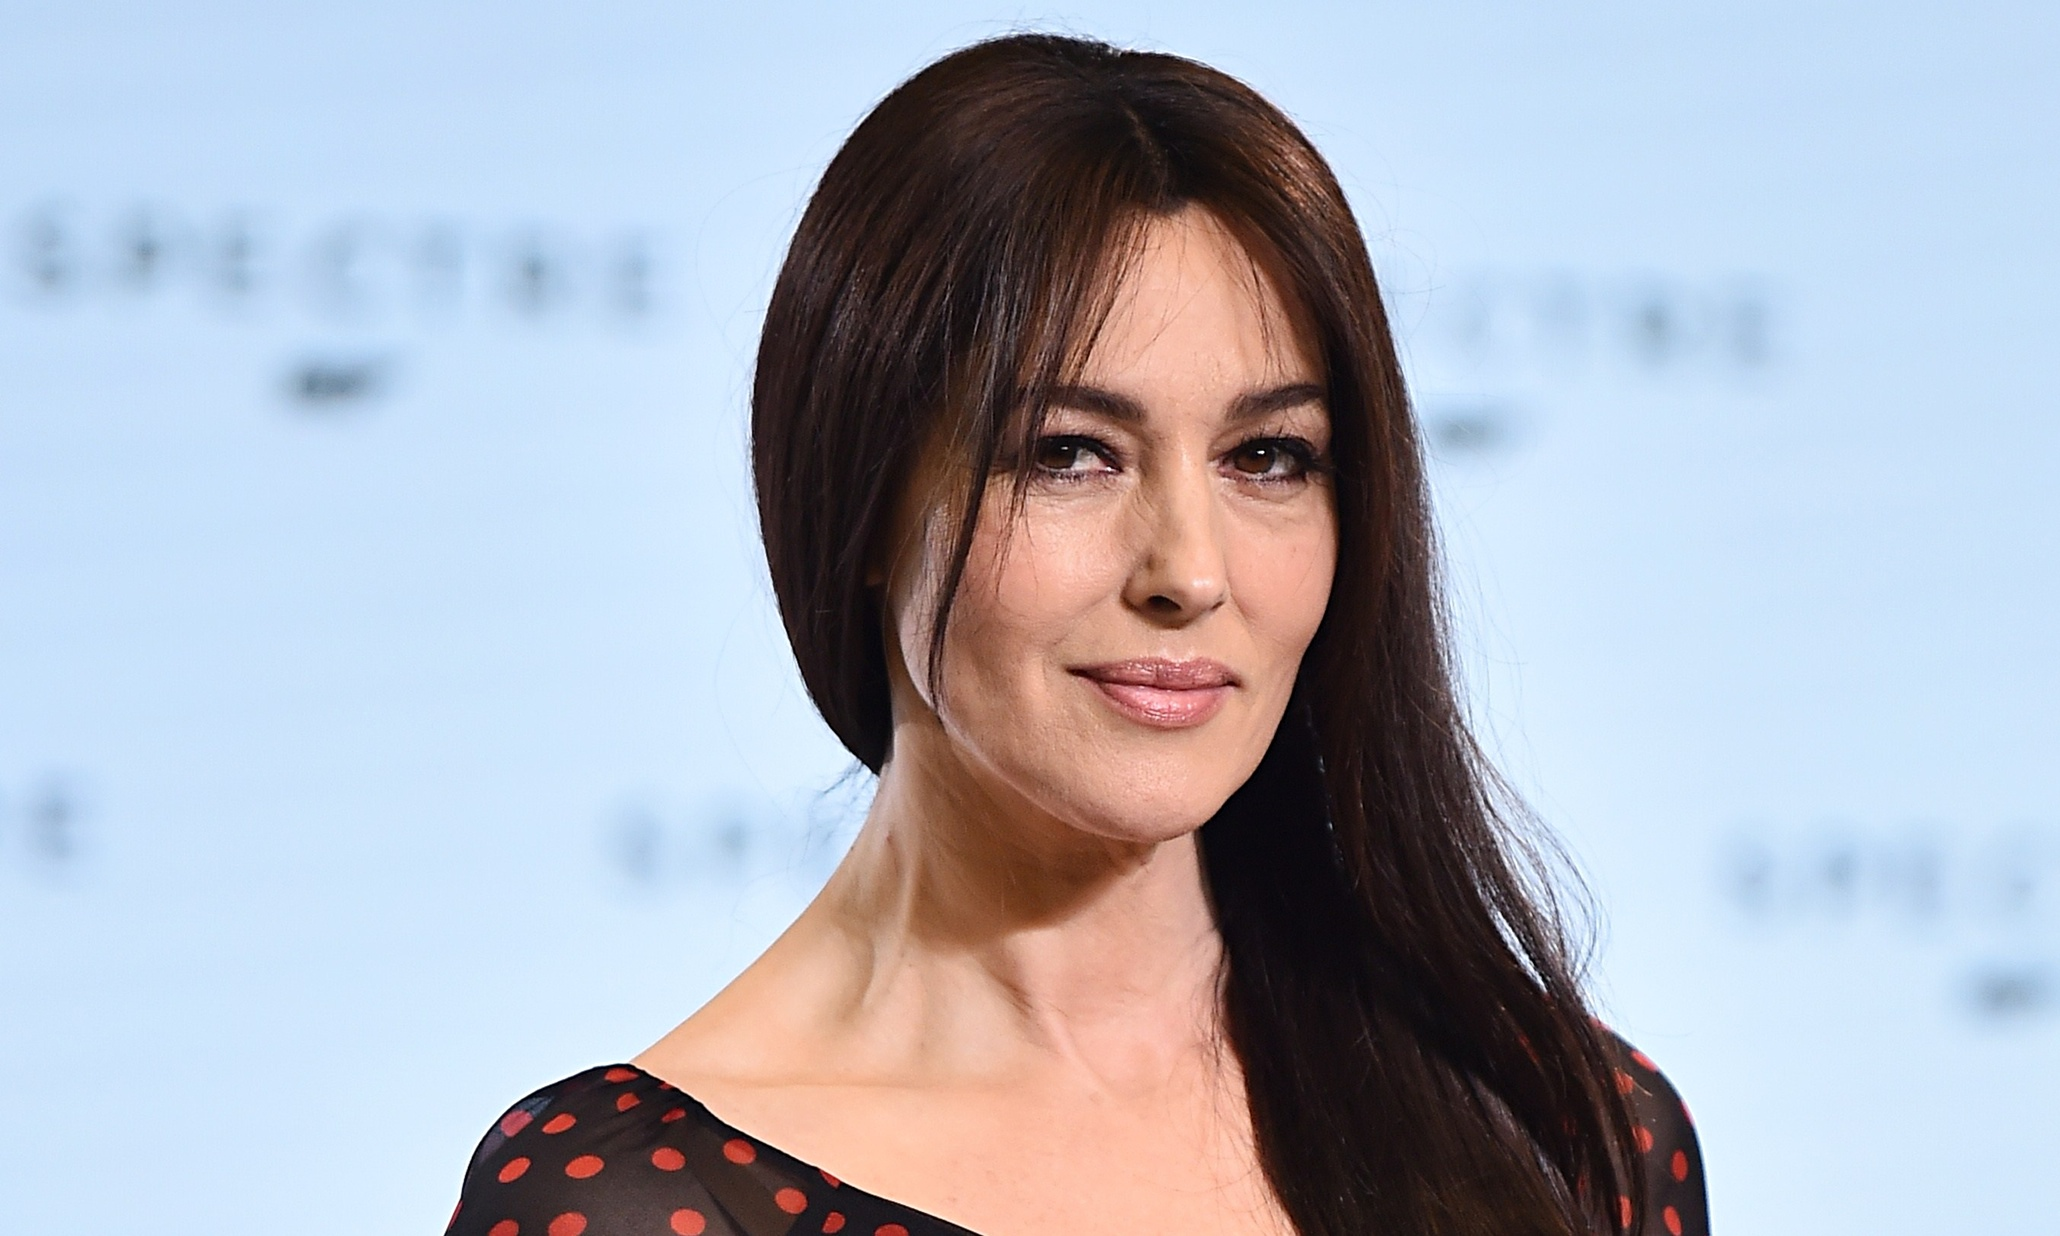 Monic Bellucci … 'Bond is the most amazing man'.